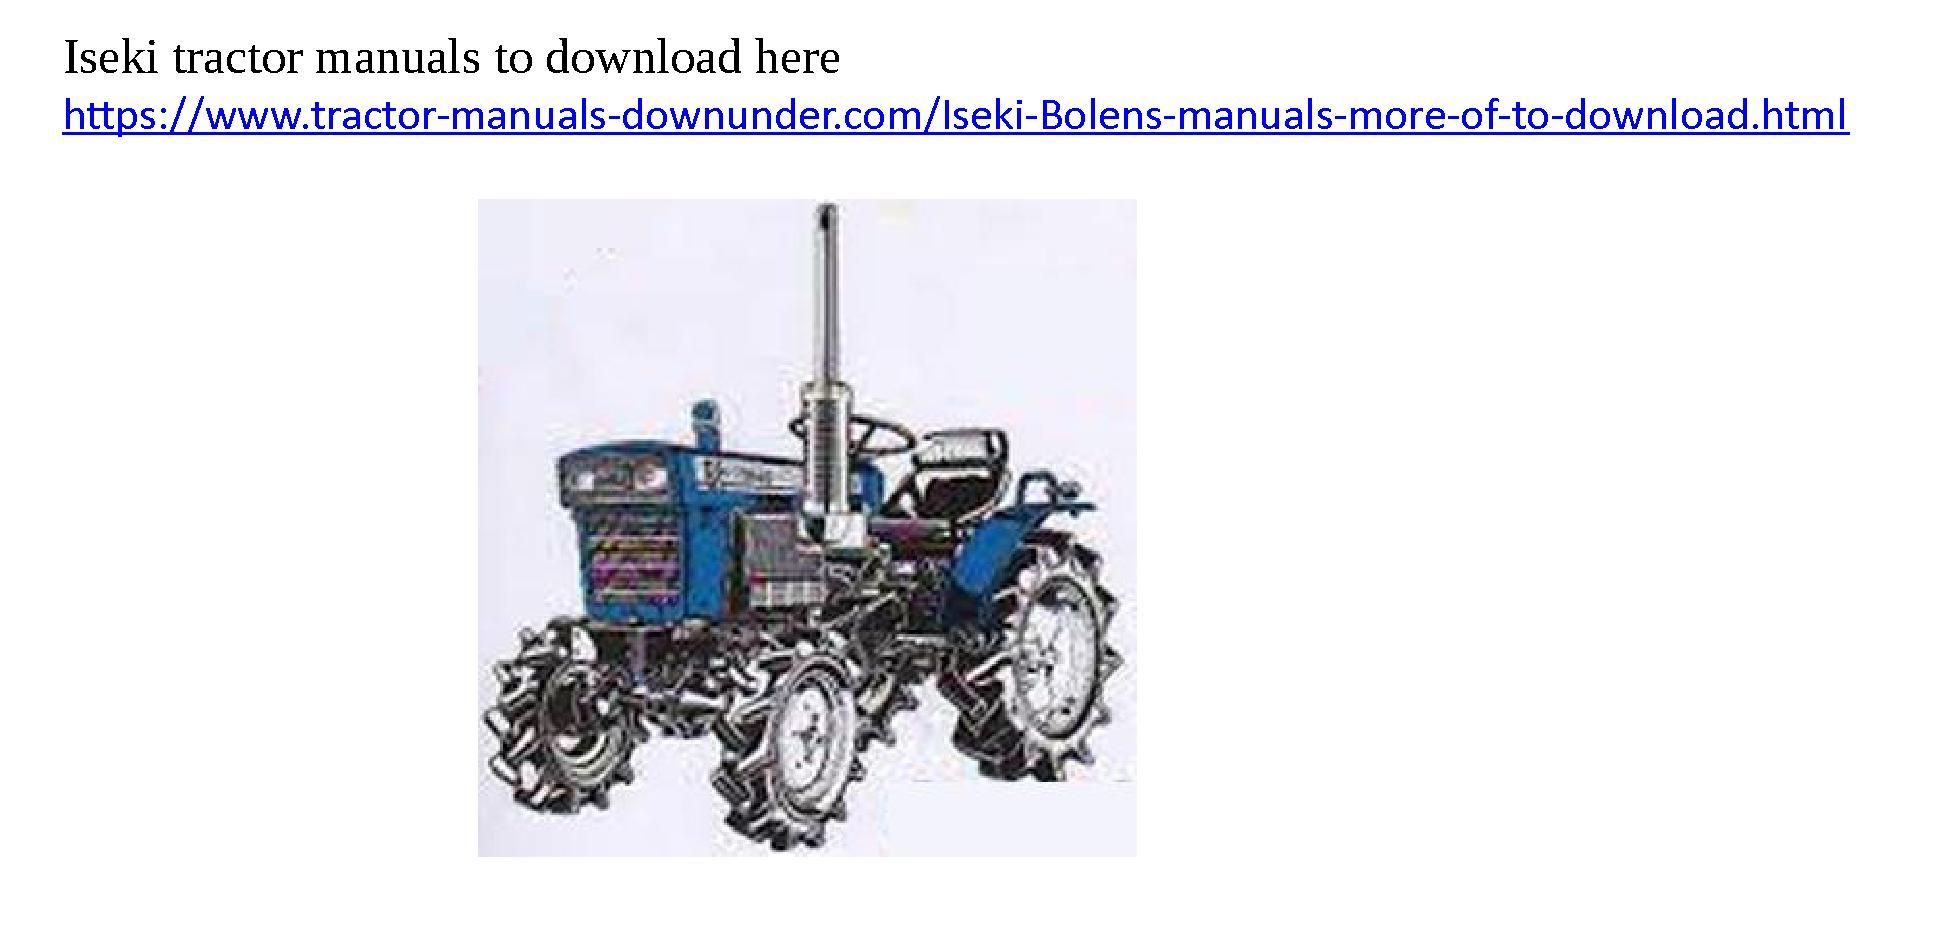 Iseki Tractor Manual Engine Diagram Array The Place To Download Manuals You Rh Pinterest Com